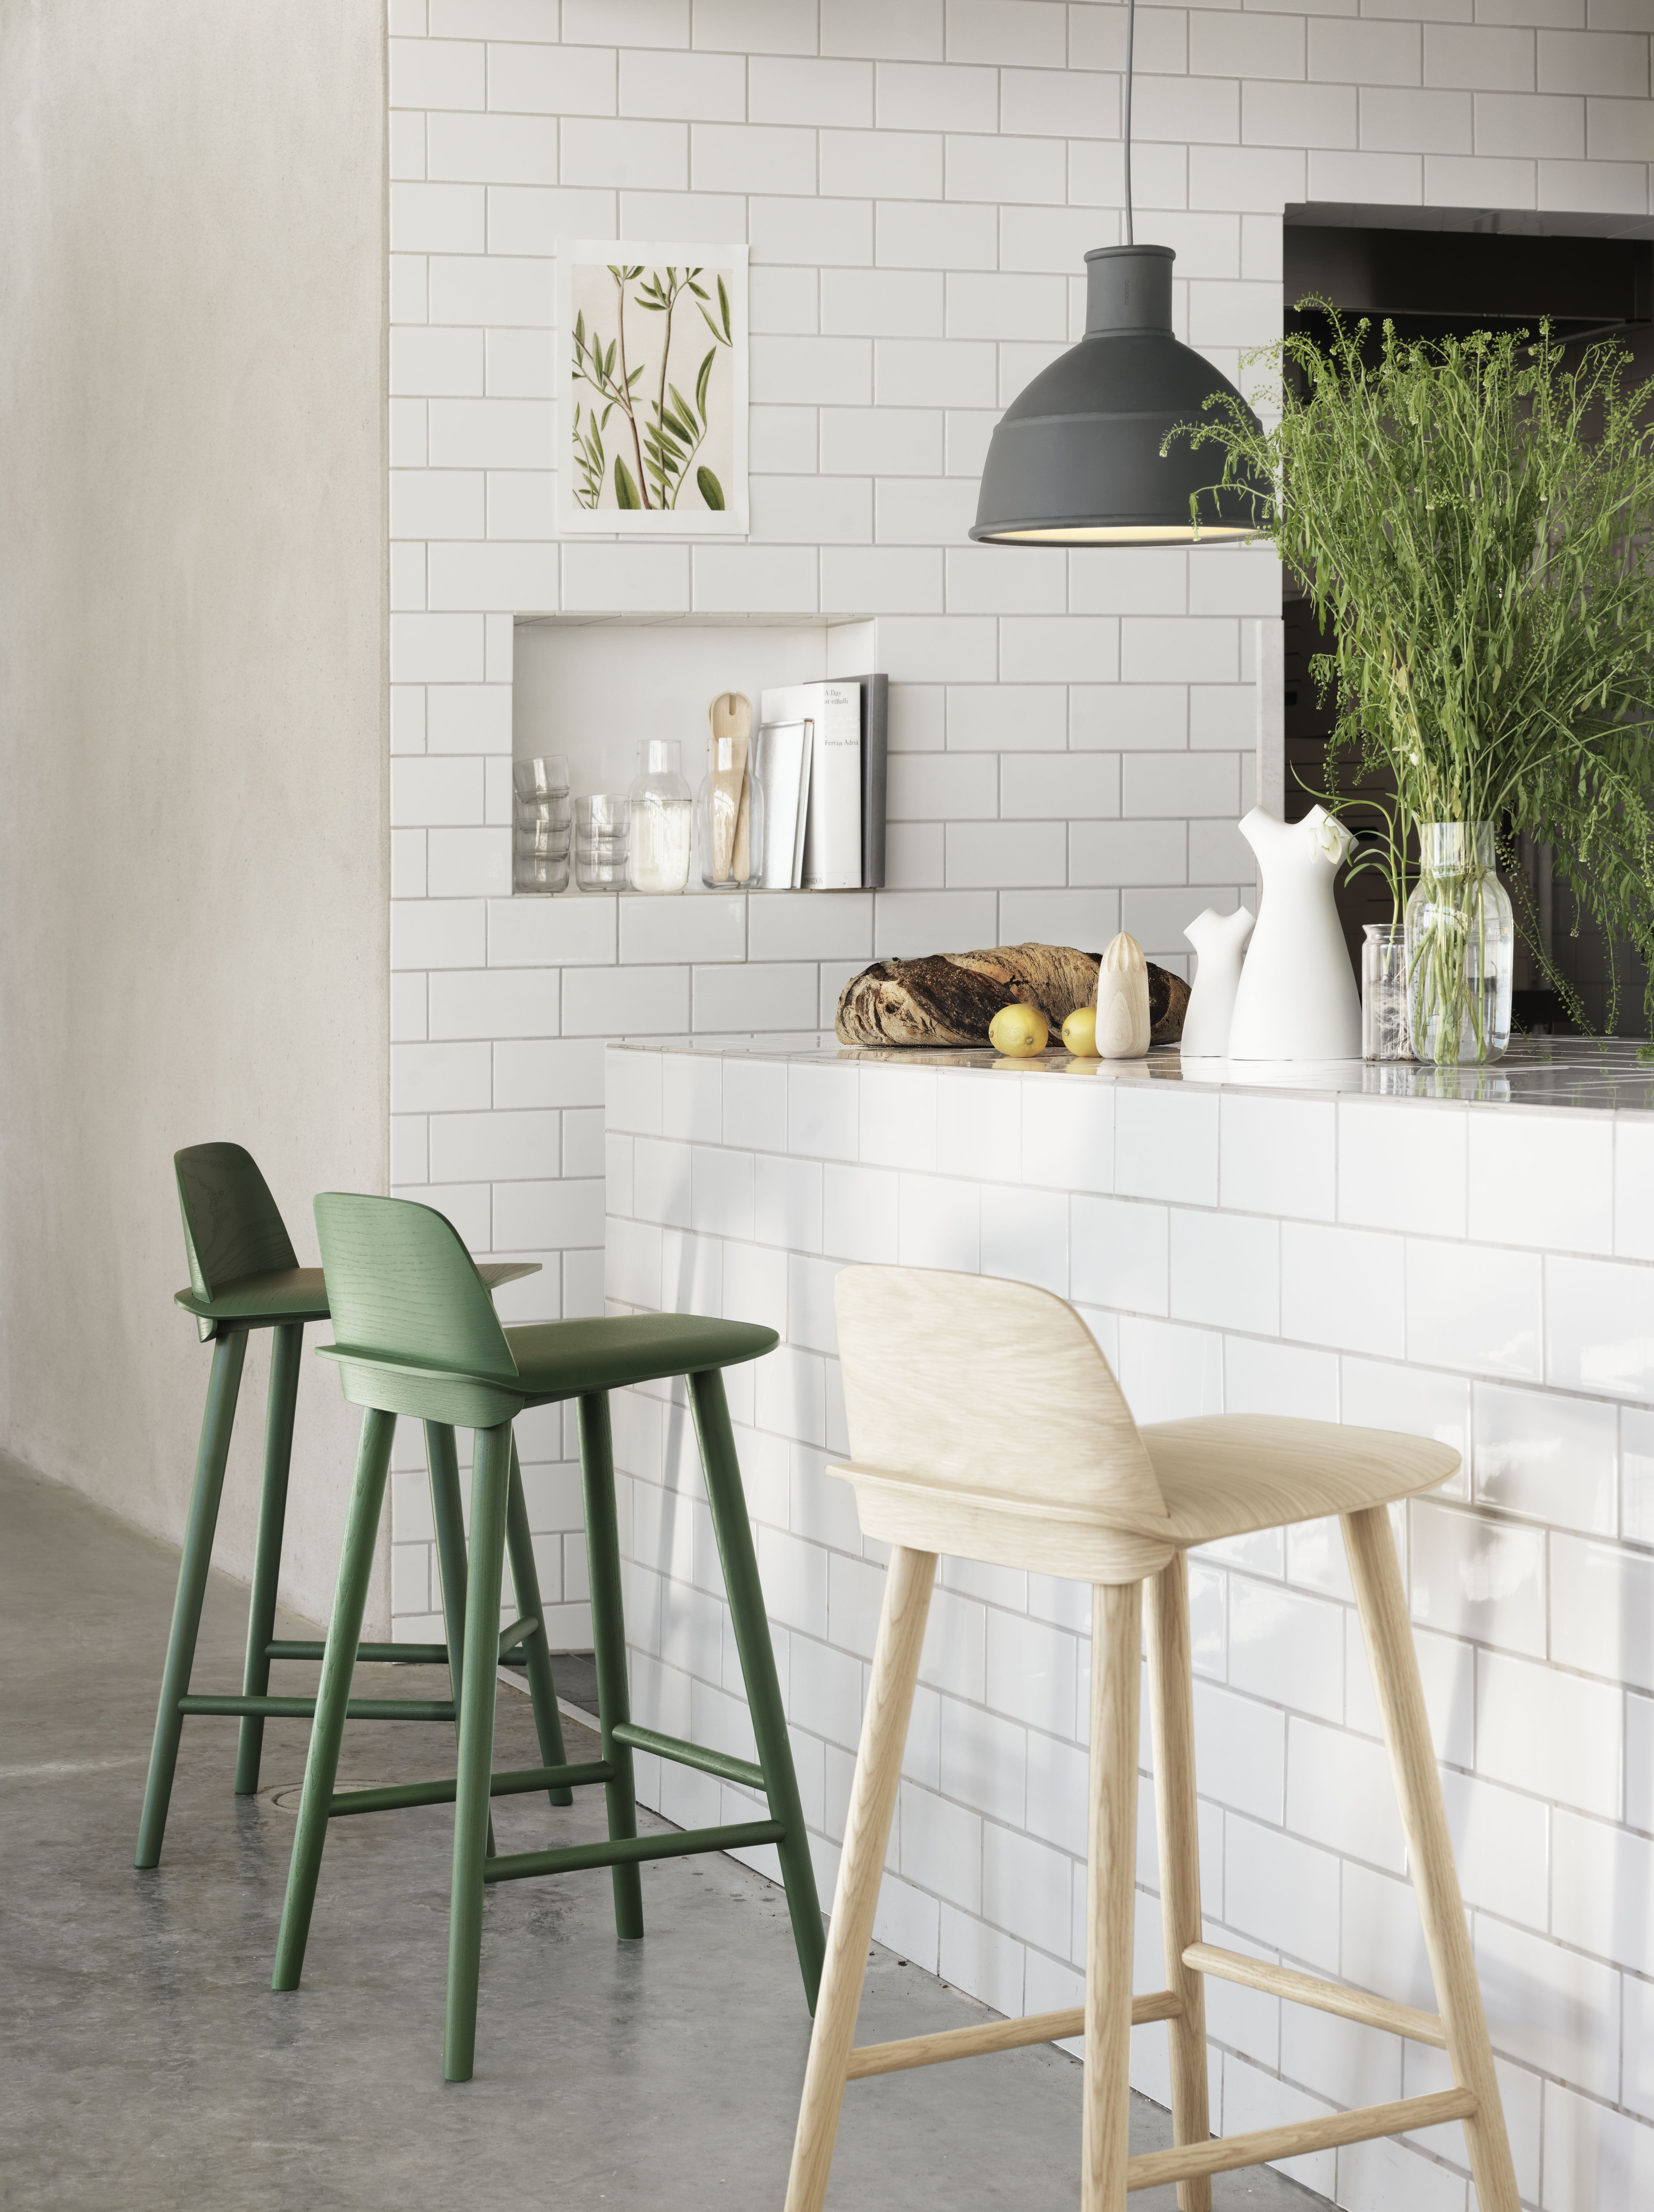 Nerd Bar Stool / Muuto | KITCHEN SPECIAL | Pinterest | Barstühle ...